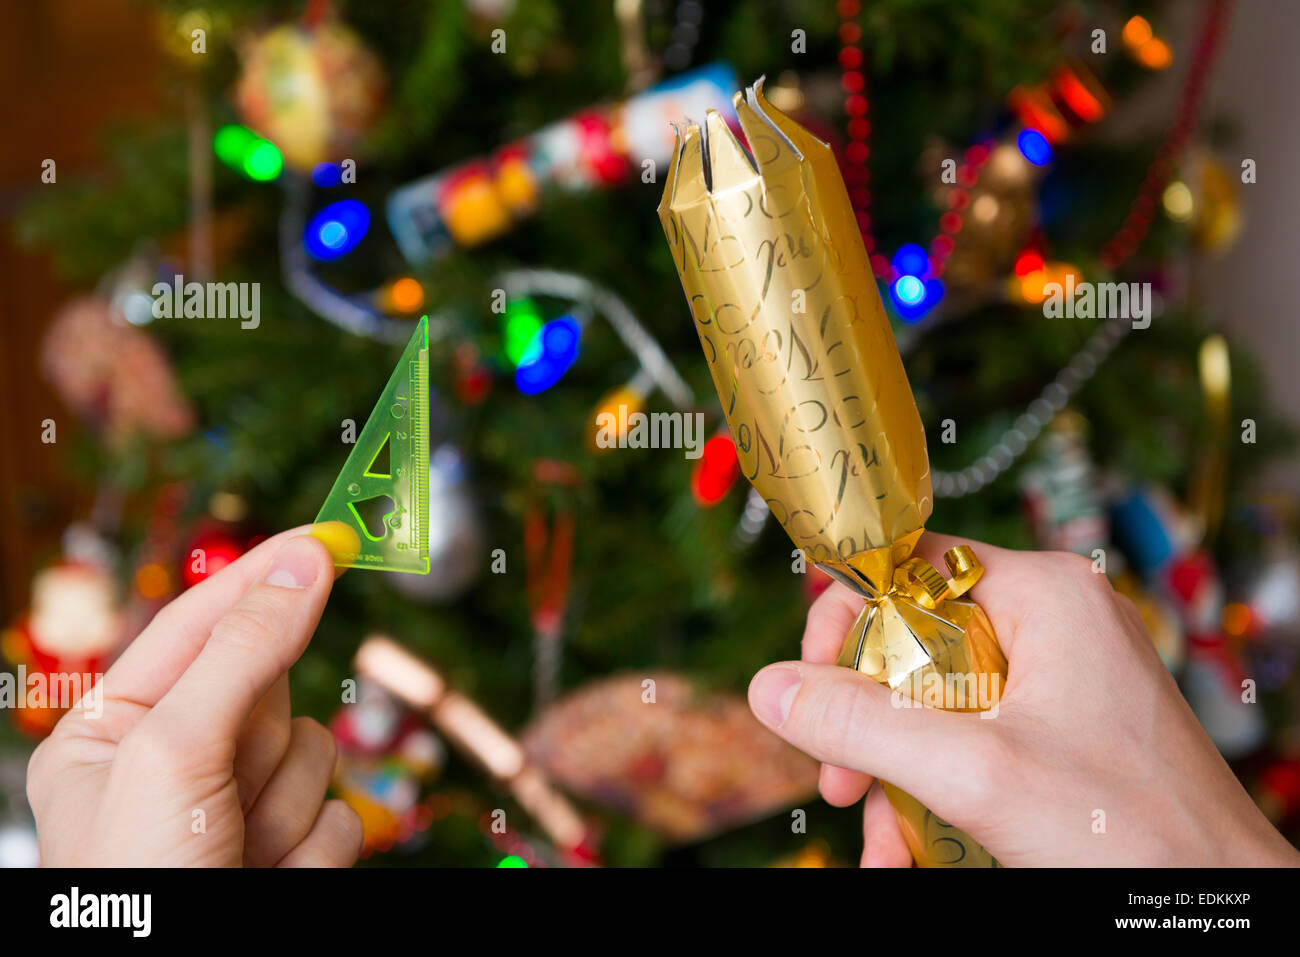 A toy from a Christmas cracker. - Stock Image